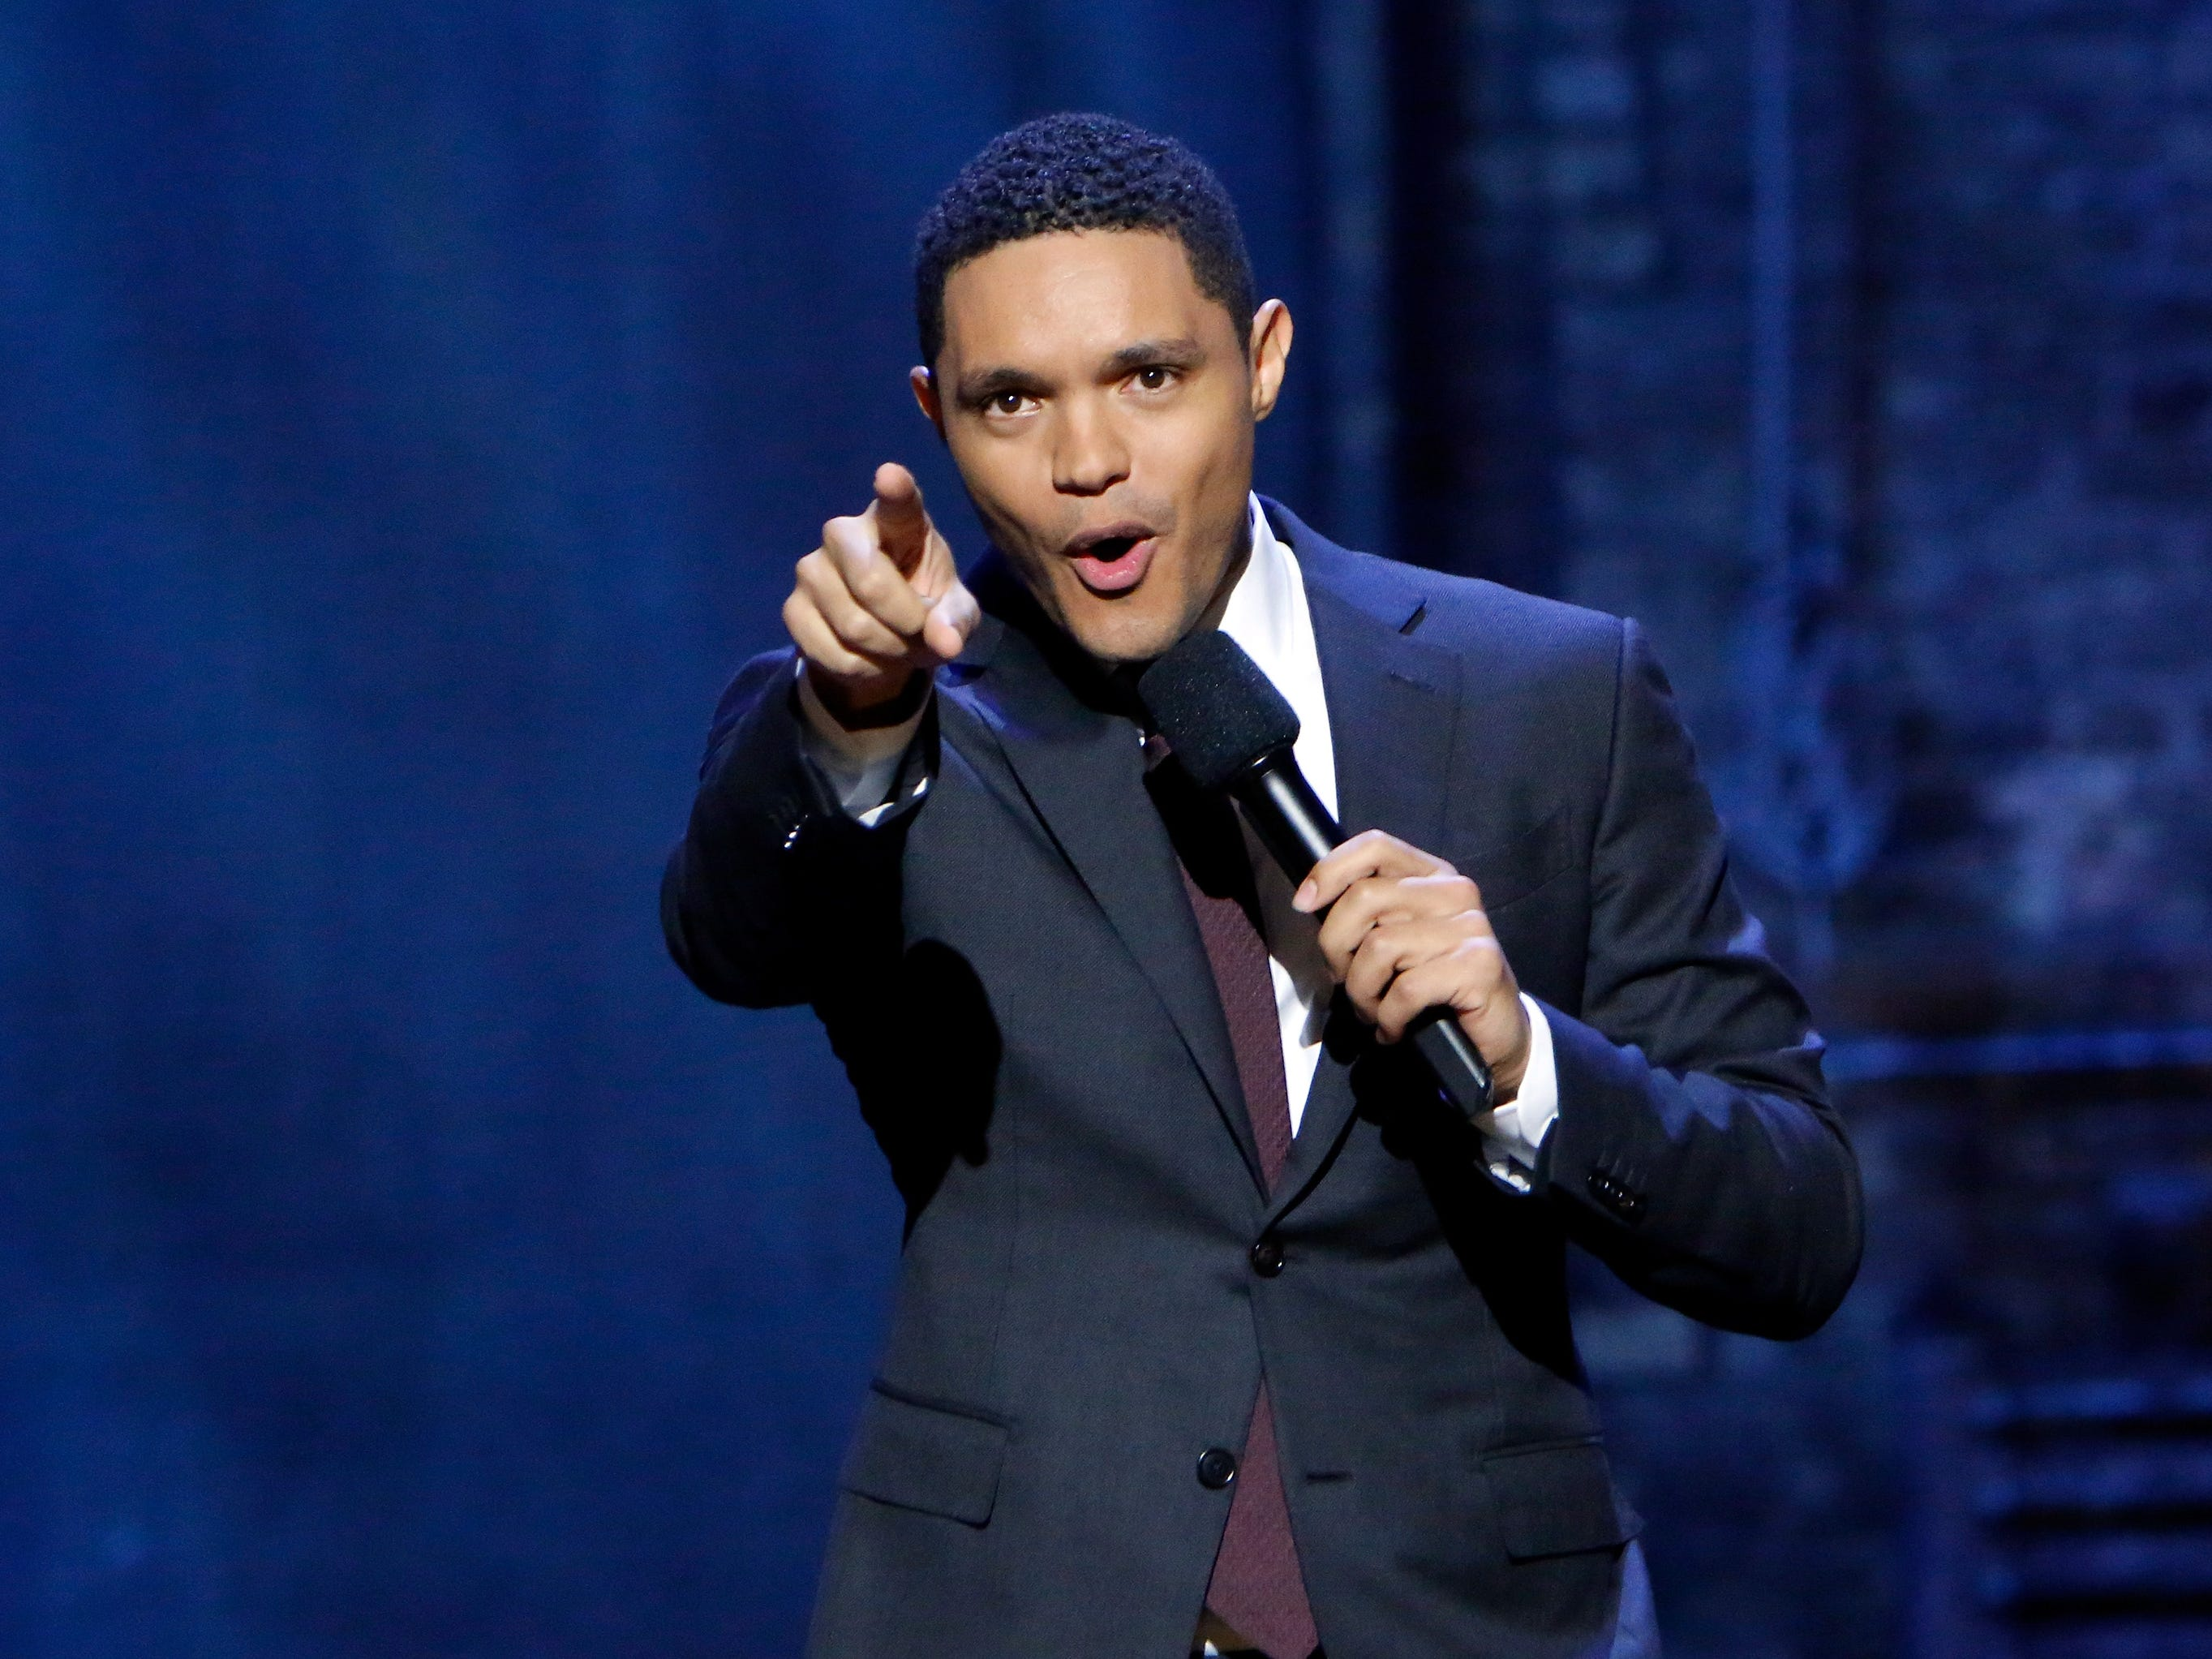 Trevor Noah claims Obama comforted him with Trump quip after comedian's major blunder